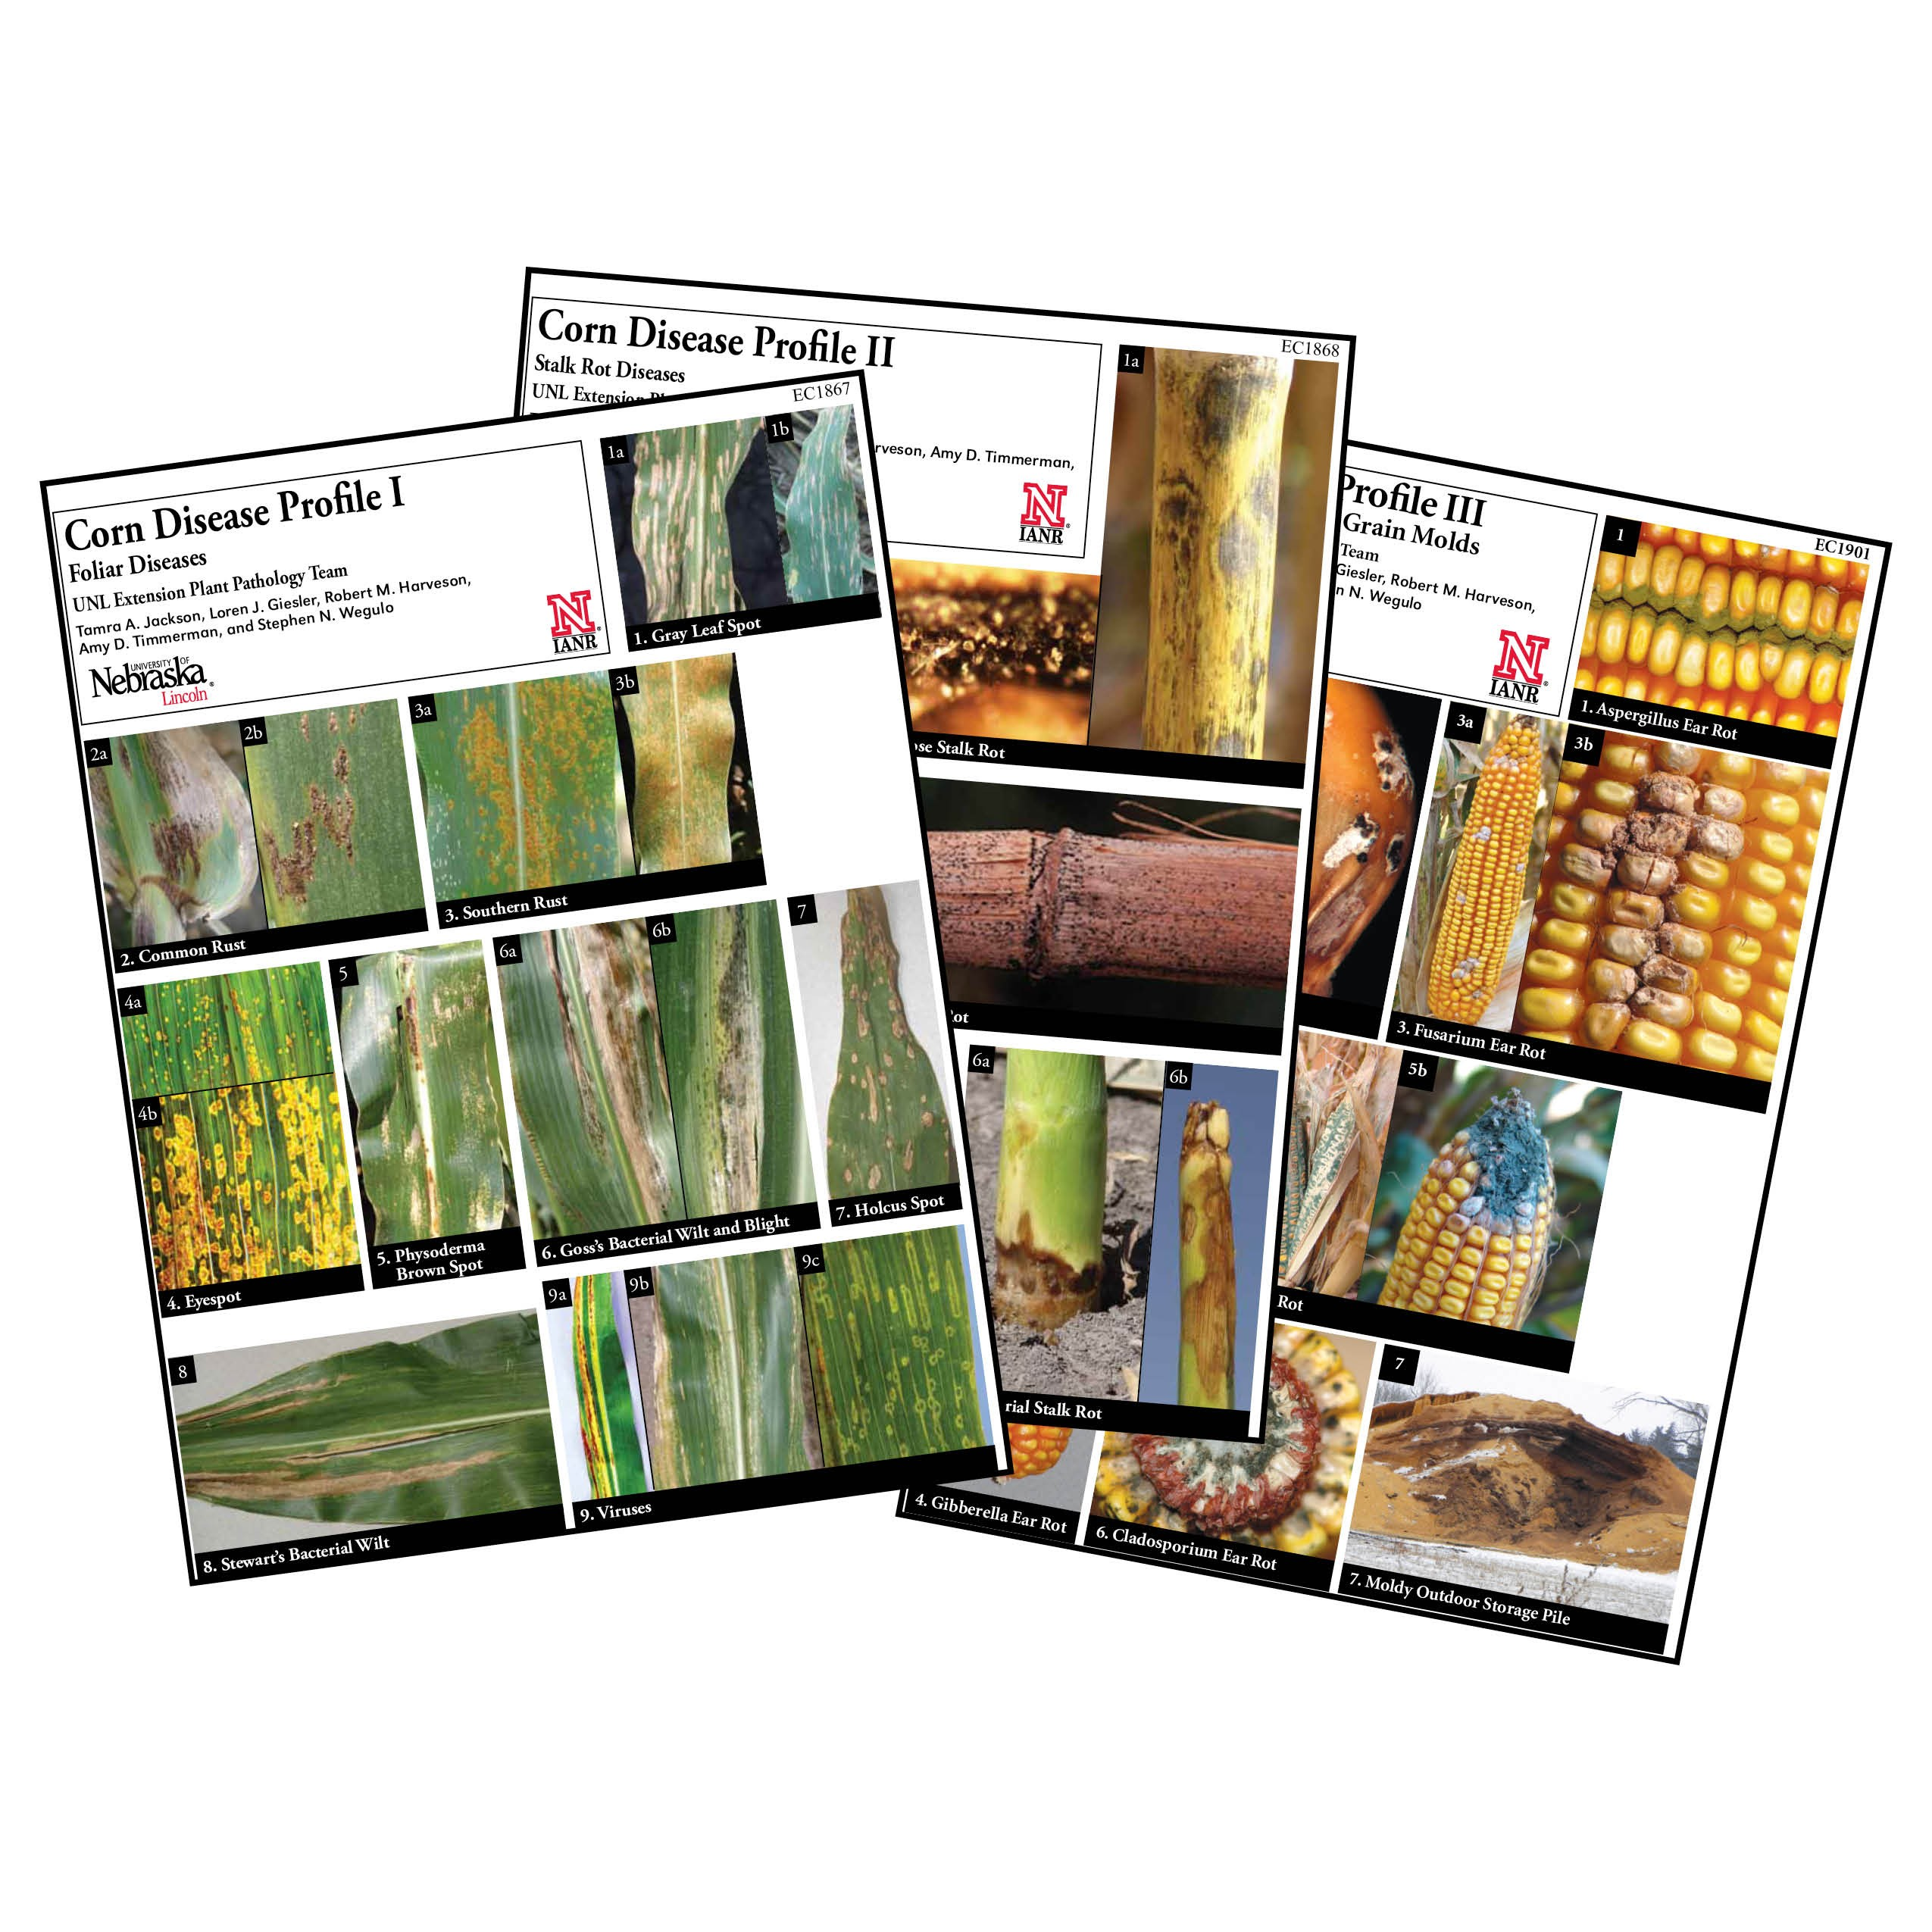 Corn Disease Profiles